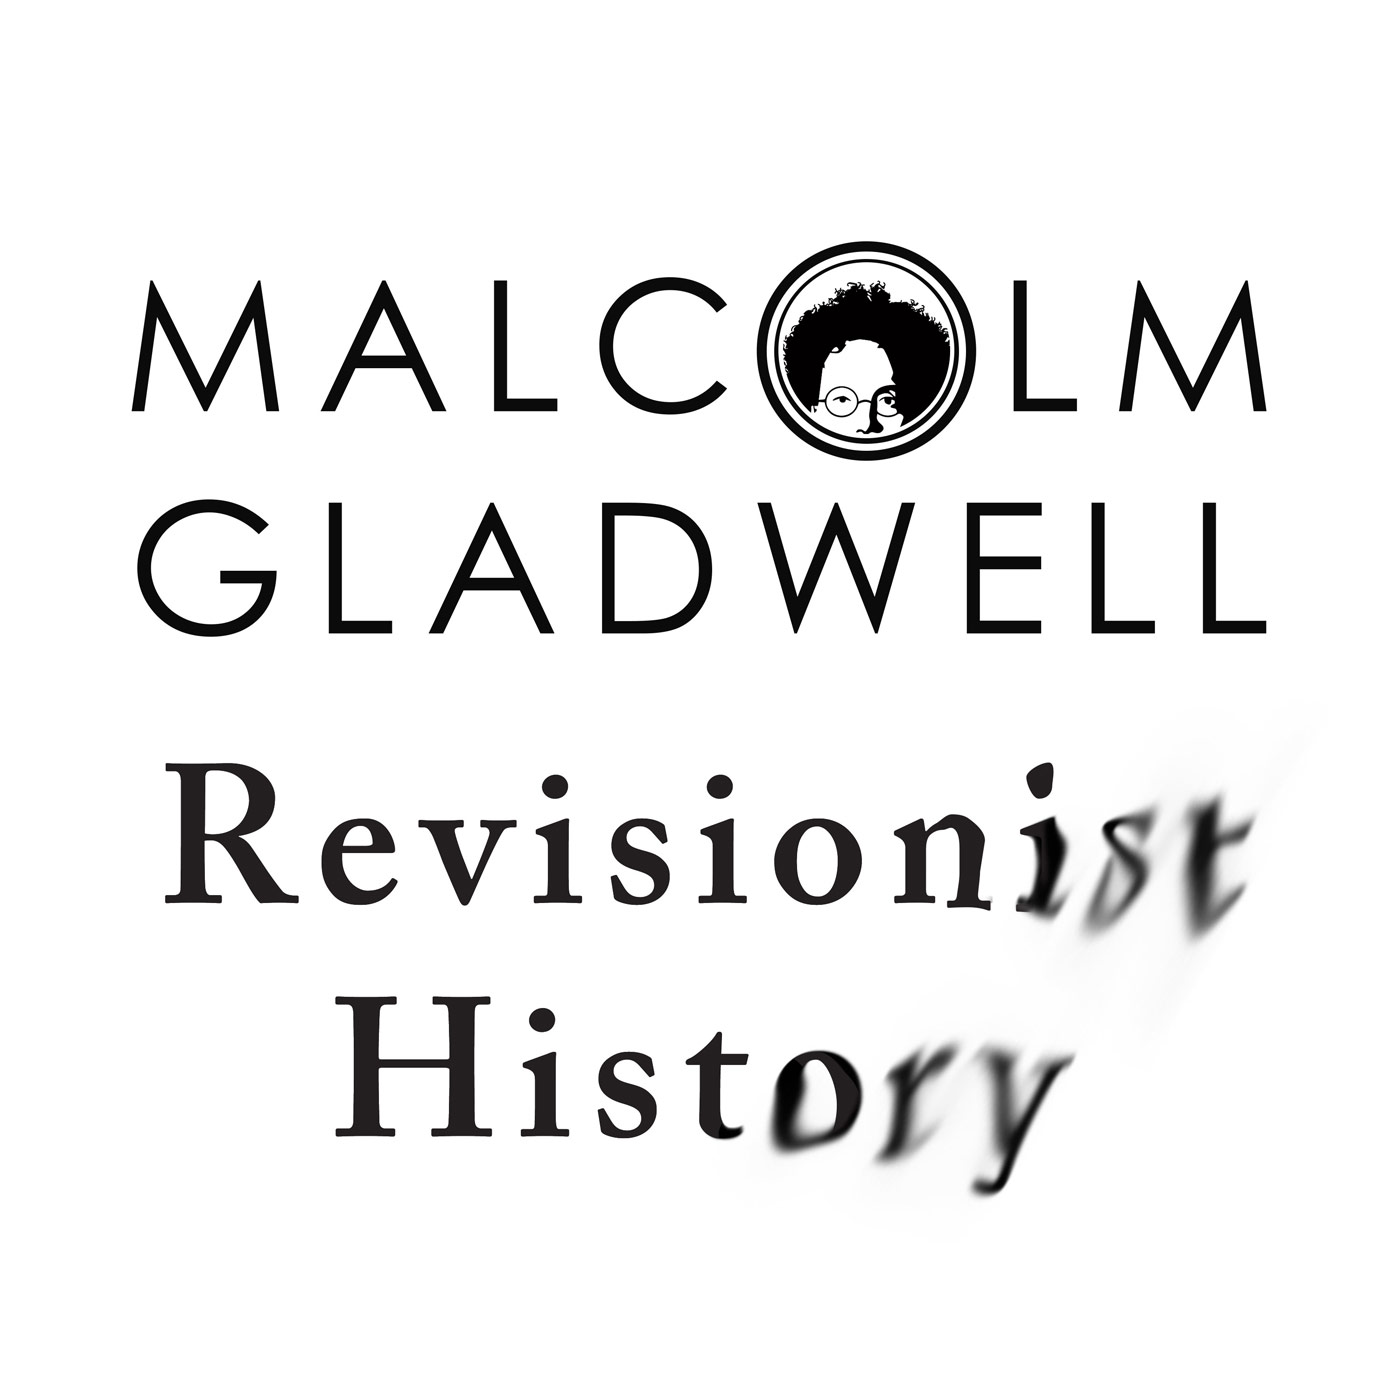 Are you listening? - Many of the people that I know in our industry come from a social science background and/or have been influenced by the work of Malcolm Gladwell.  I stumbled upon his new podcast series Revisionist History the other day and was immediately impressed.  Podcasts are a great forum for his natural storytelling ability.  His topics range from exploring history with a new lens to revealing the myth behind some of our commonly held American beliefs.  I've been pleased with the message and production value of each episode, but my favorite is Carlos Doesn't Remember, which documents the terrible waste of leaving the talent of low-income students unrealized.